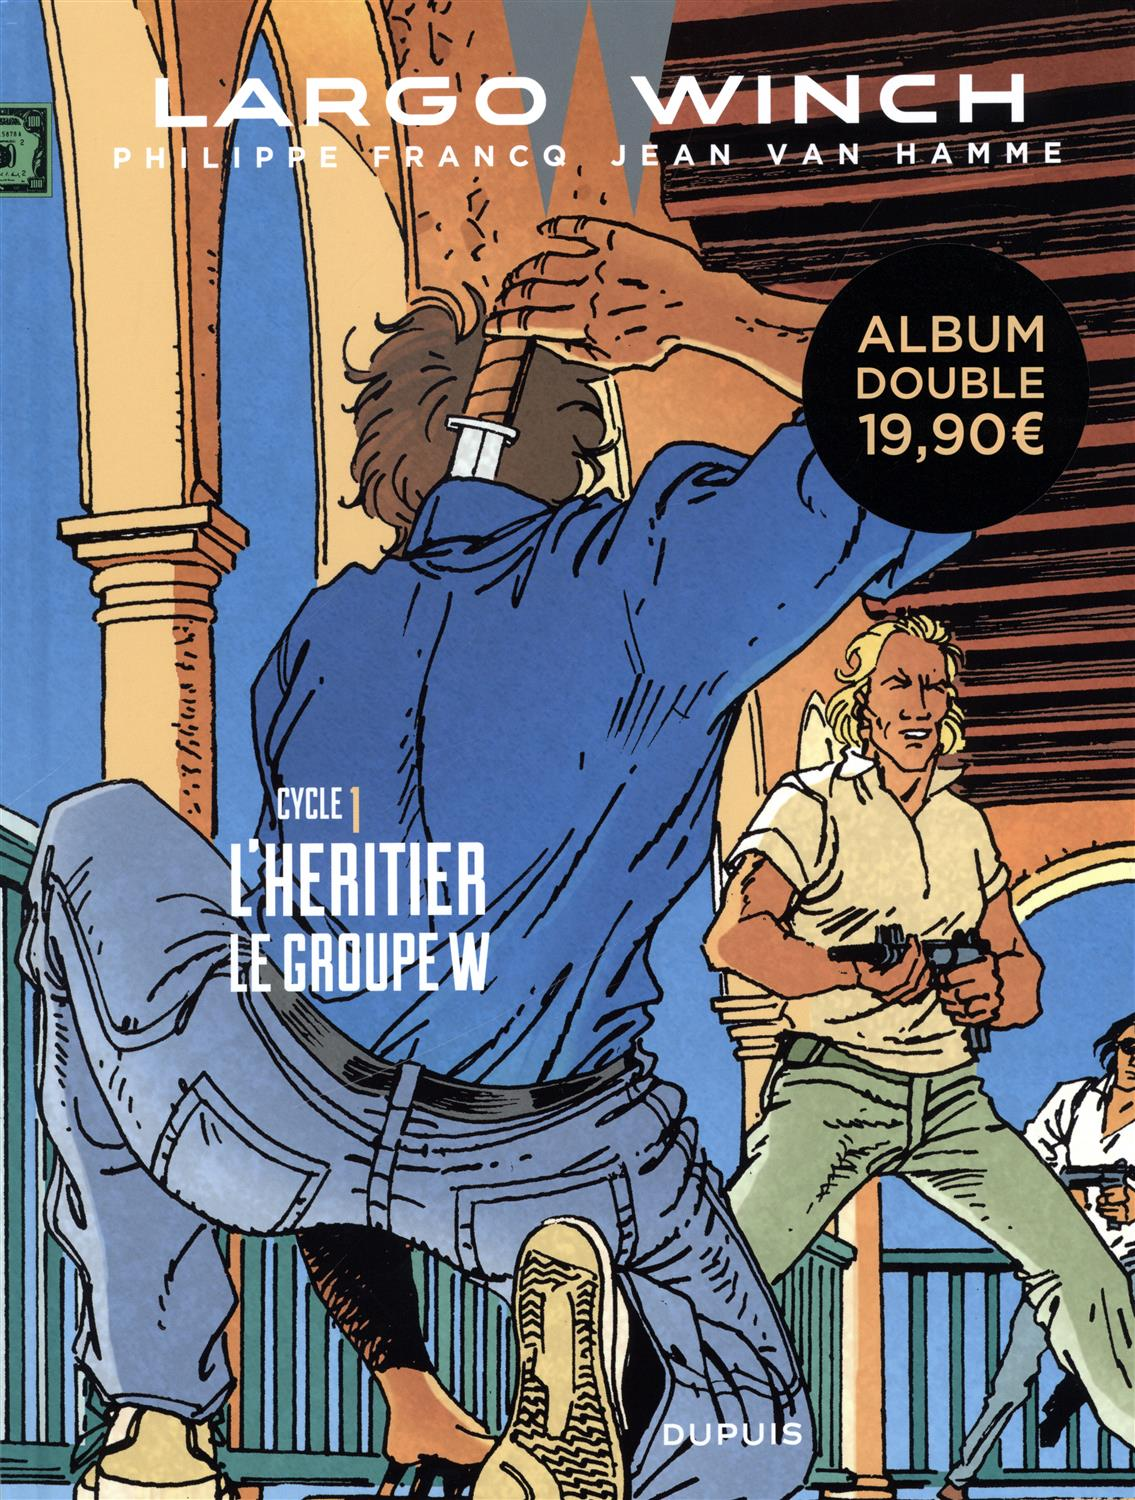 Largo Winch Cycle 1 : L'héritier ; Le Groupe W